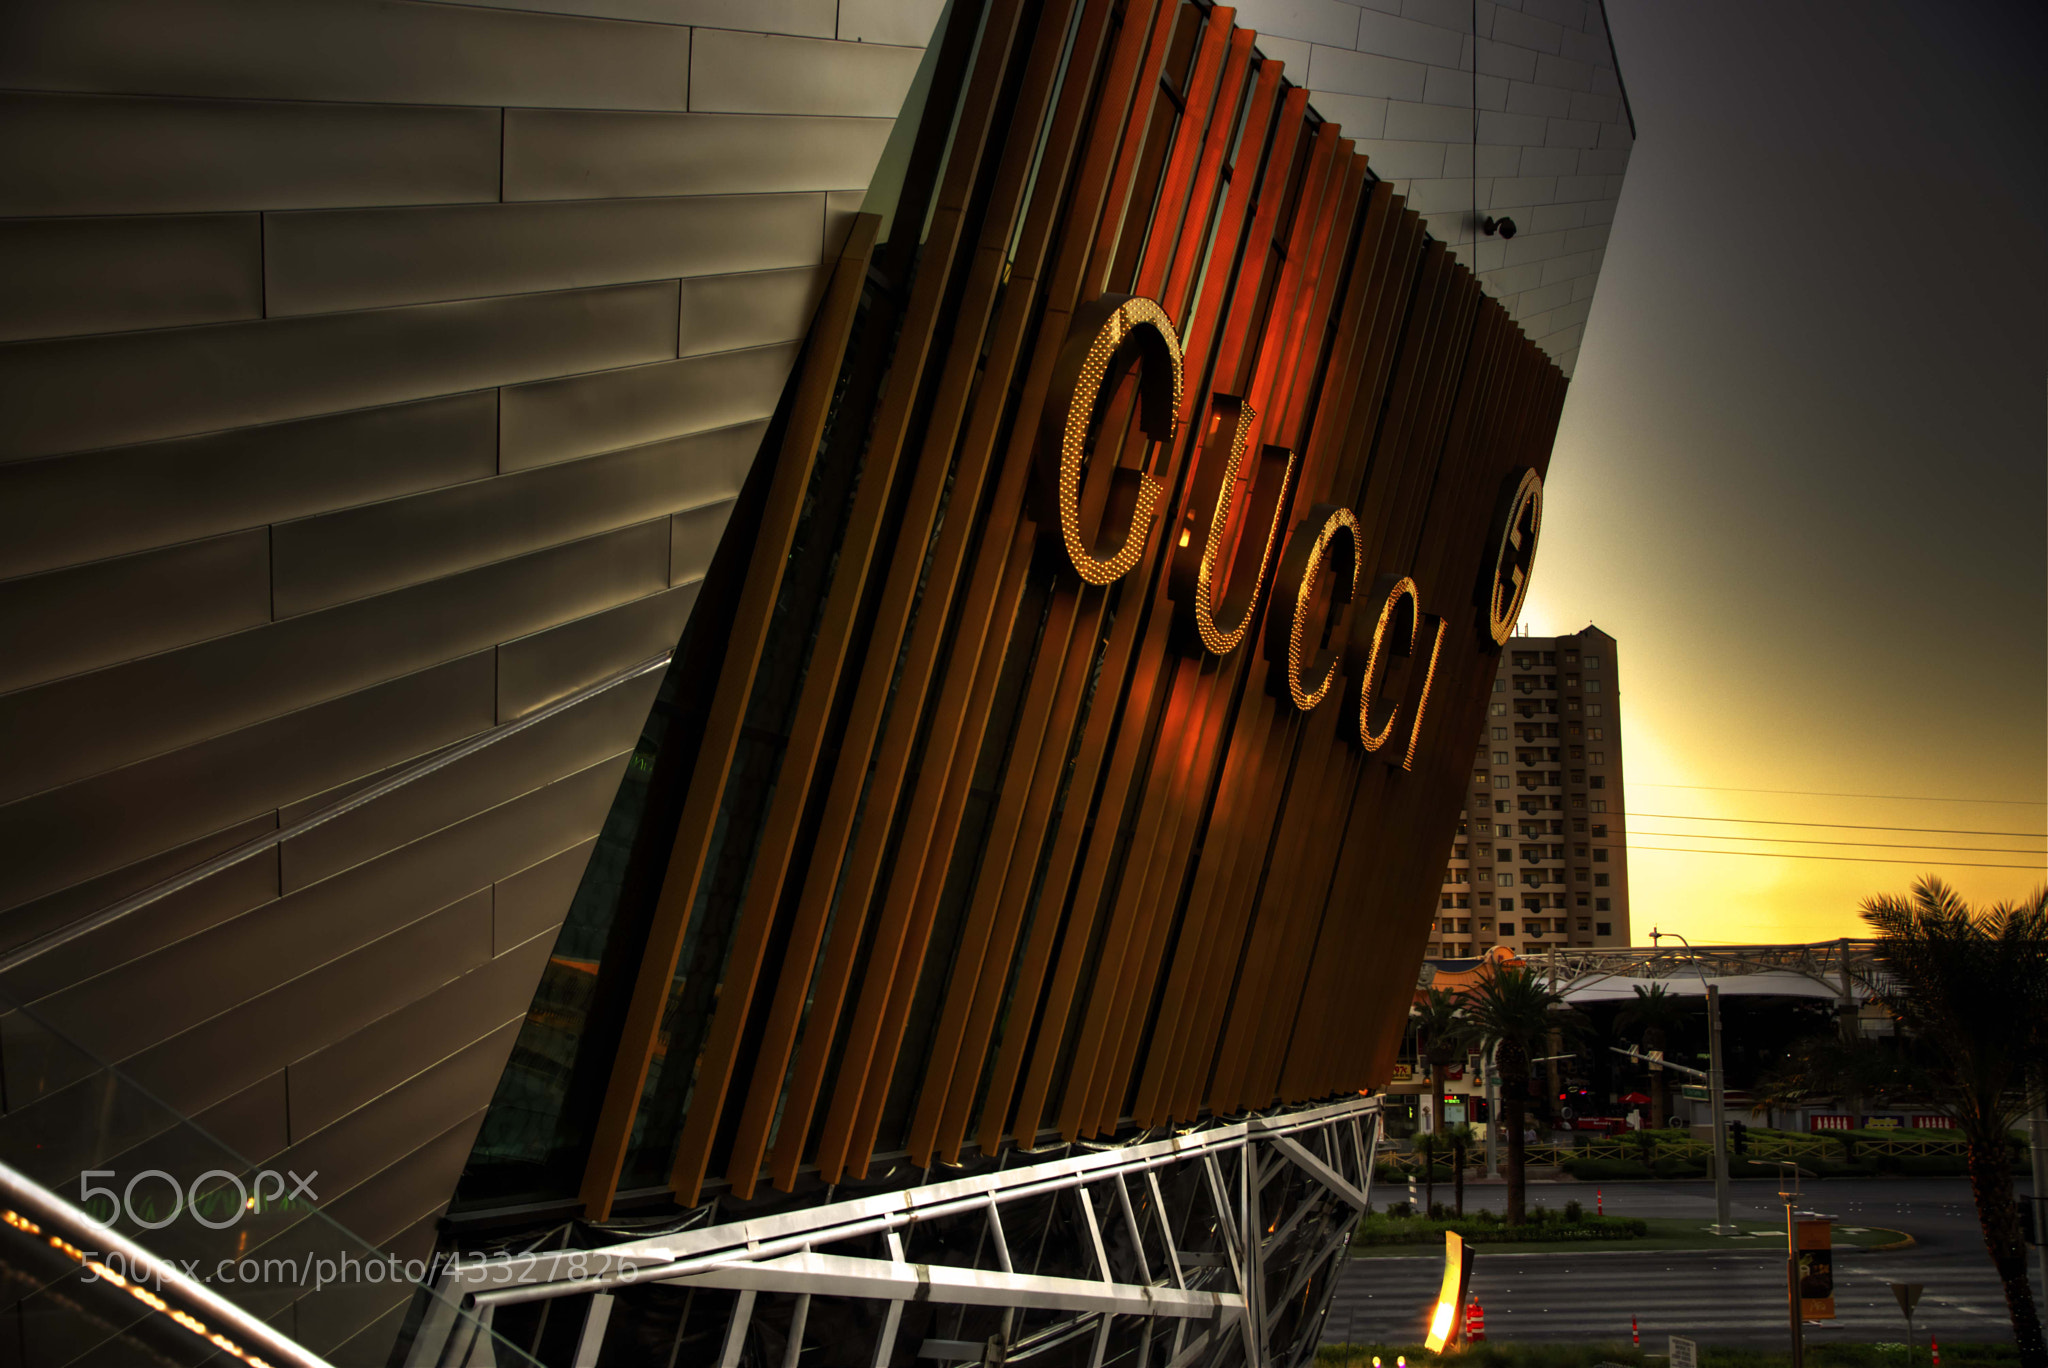 Photograph Gucci's Finest by Bobby Gonzalez on 500px